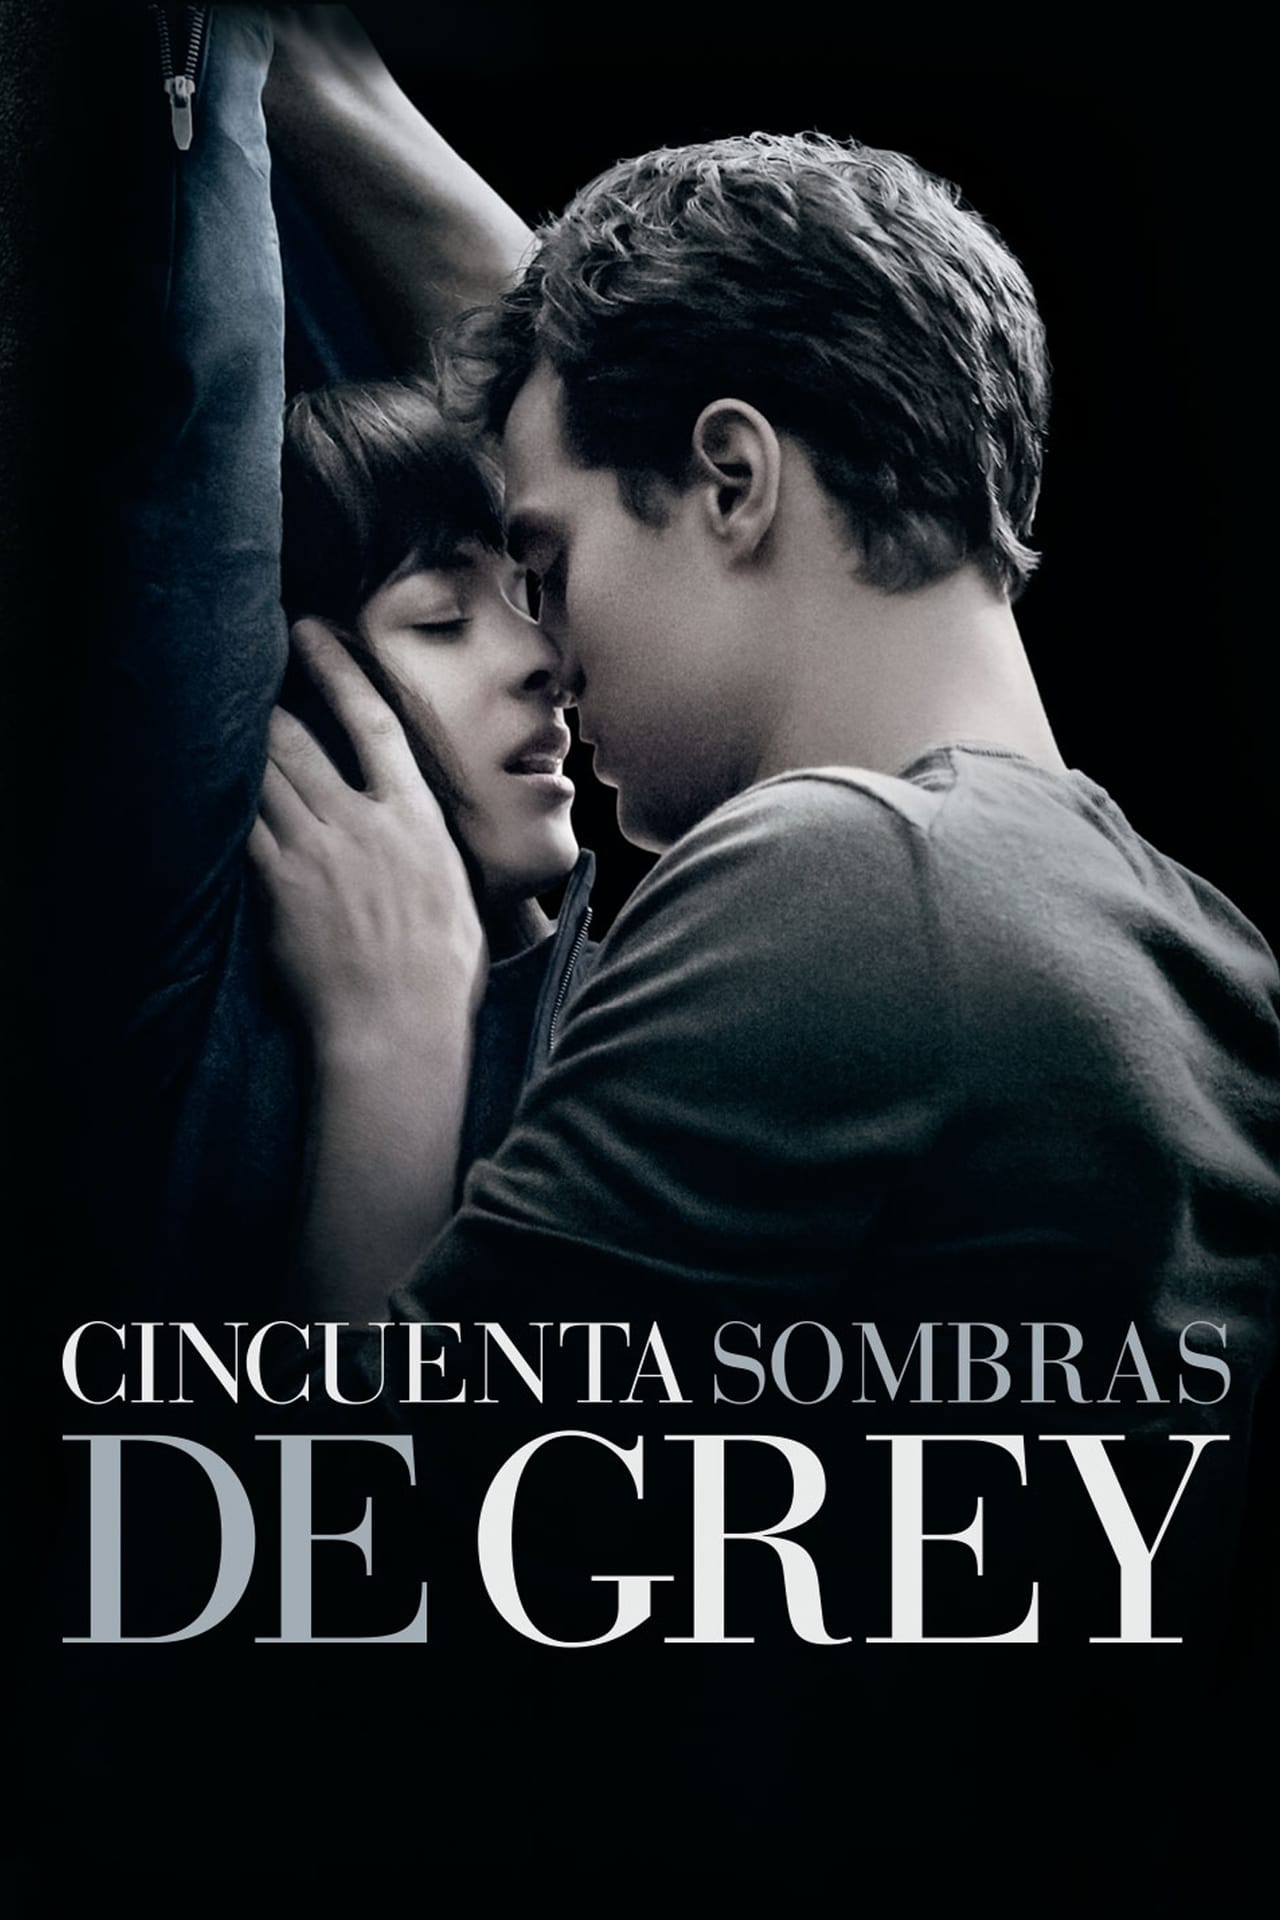 Watch Streaming Fifty Shades of Grey (2015) Full Length